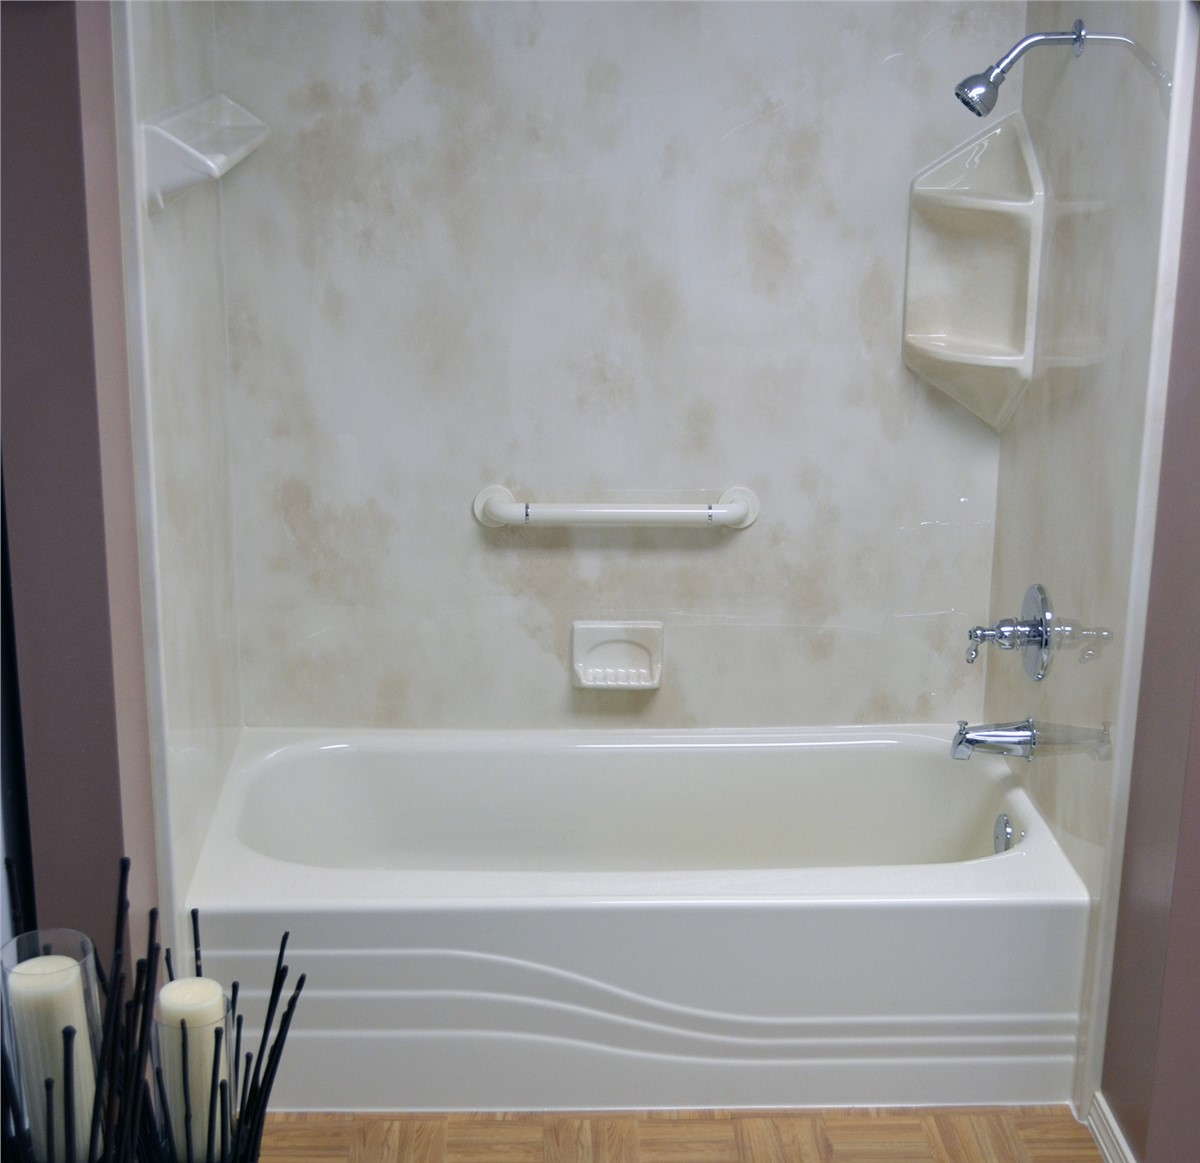 New Bathtubs Syracuse  Syracuse New Bathtub Installation